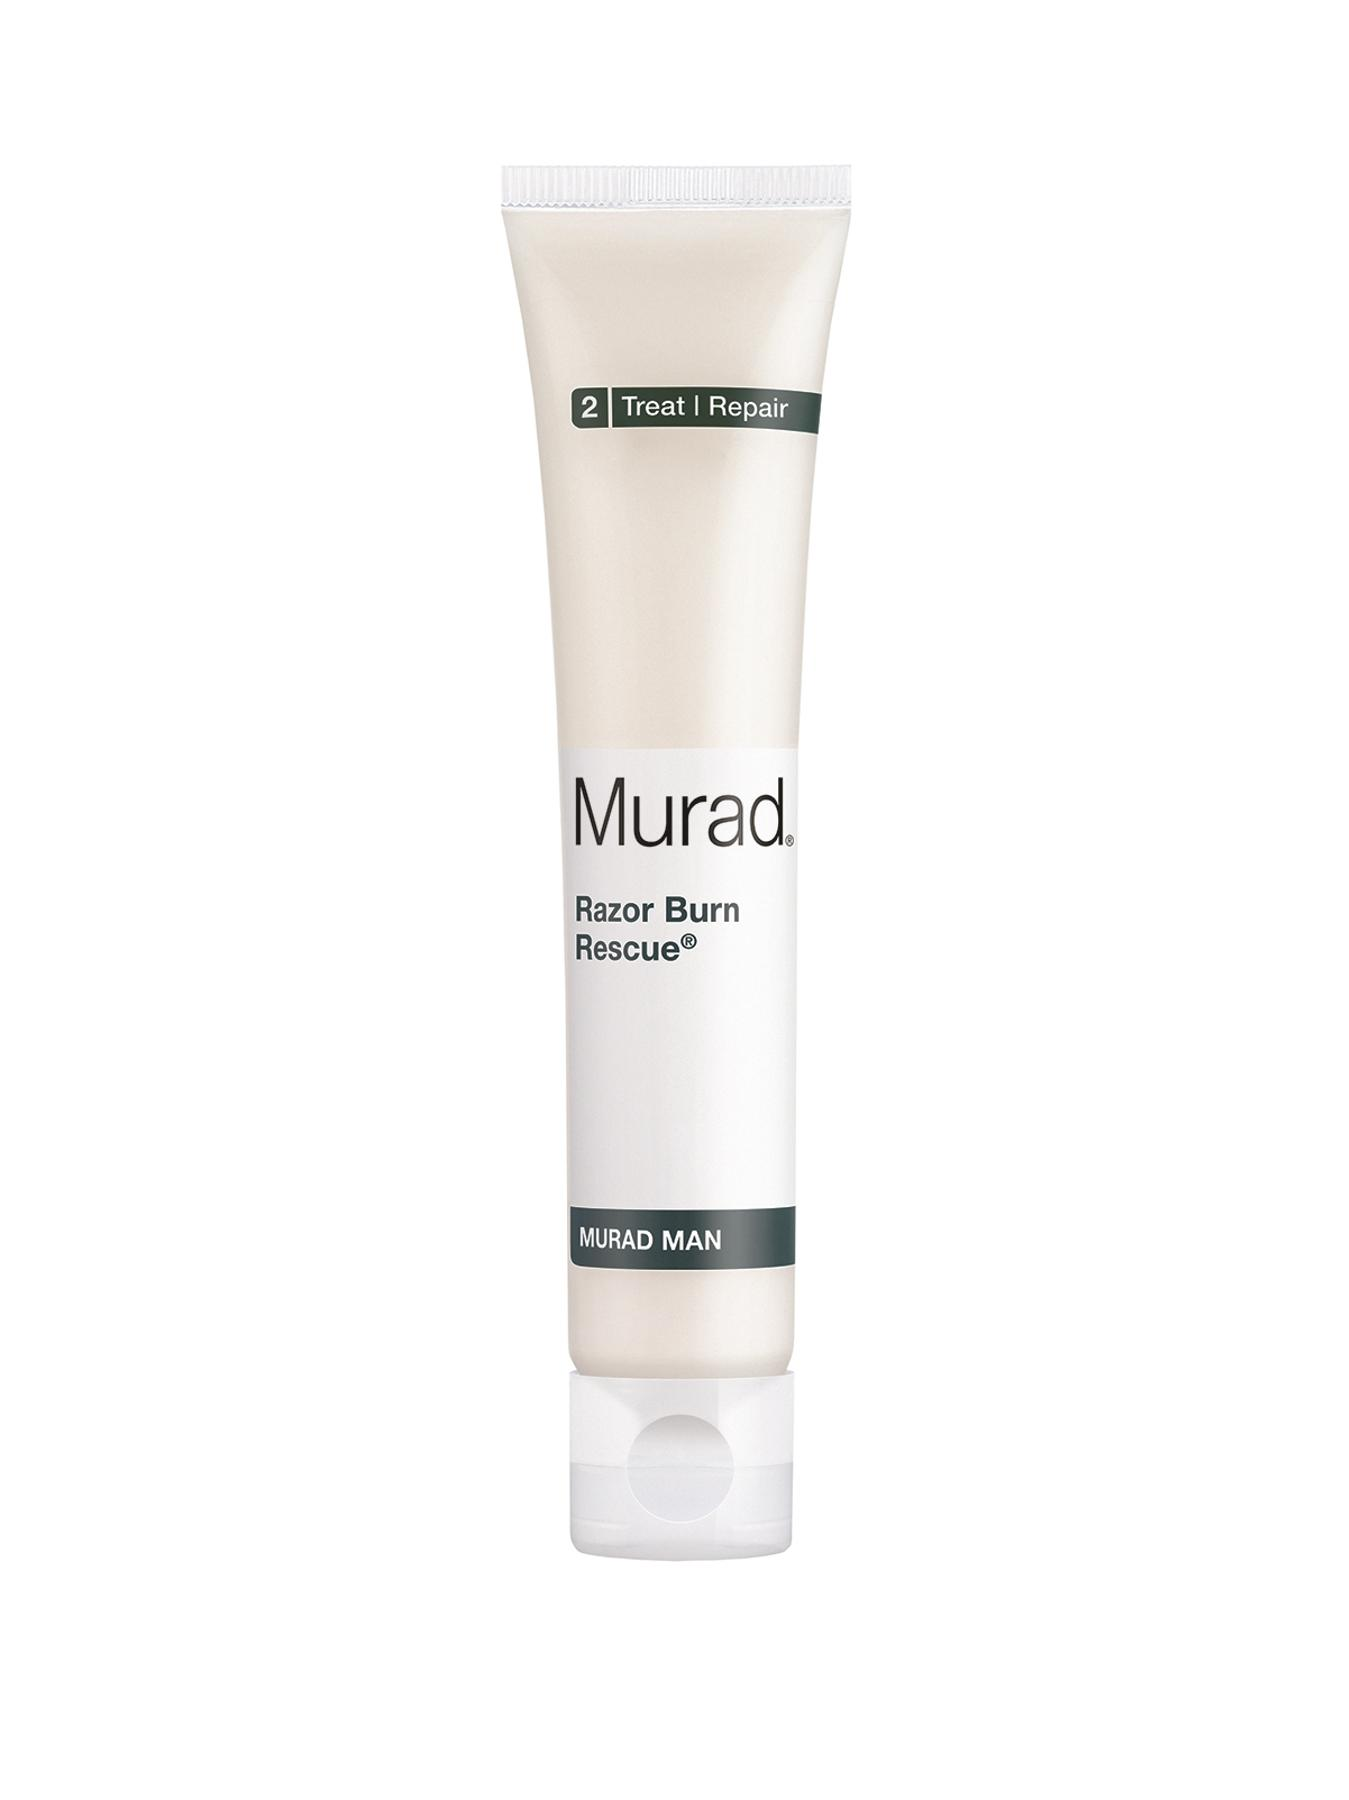 Murad Razor Burn Rescue